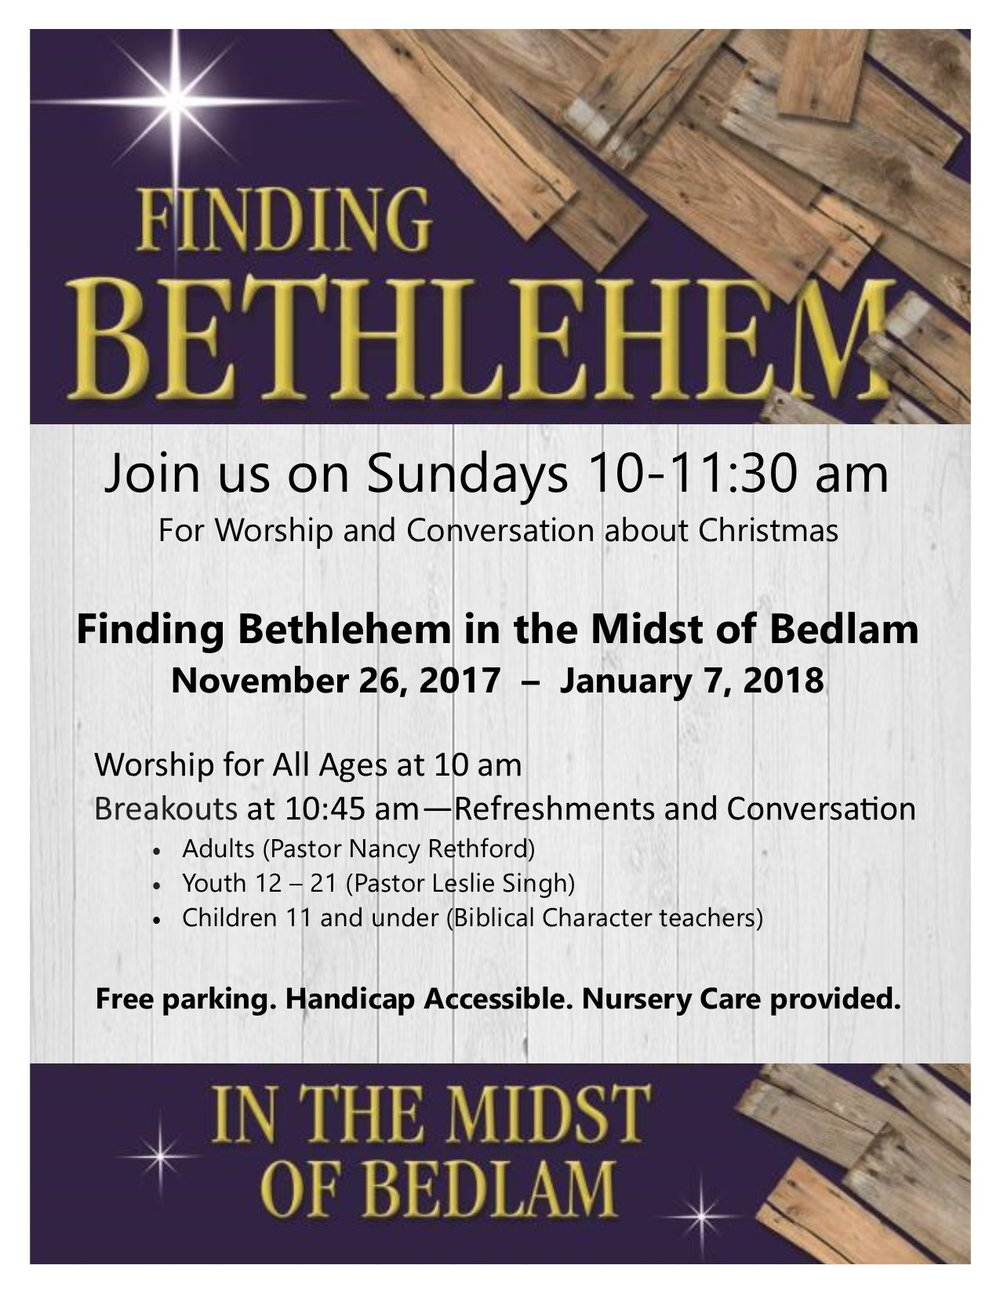 2017 Finding Bethlehem in the Midst of Bedlam community flyer.jpg